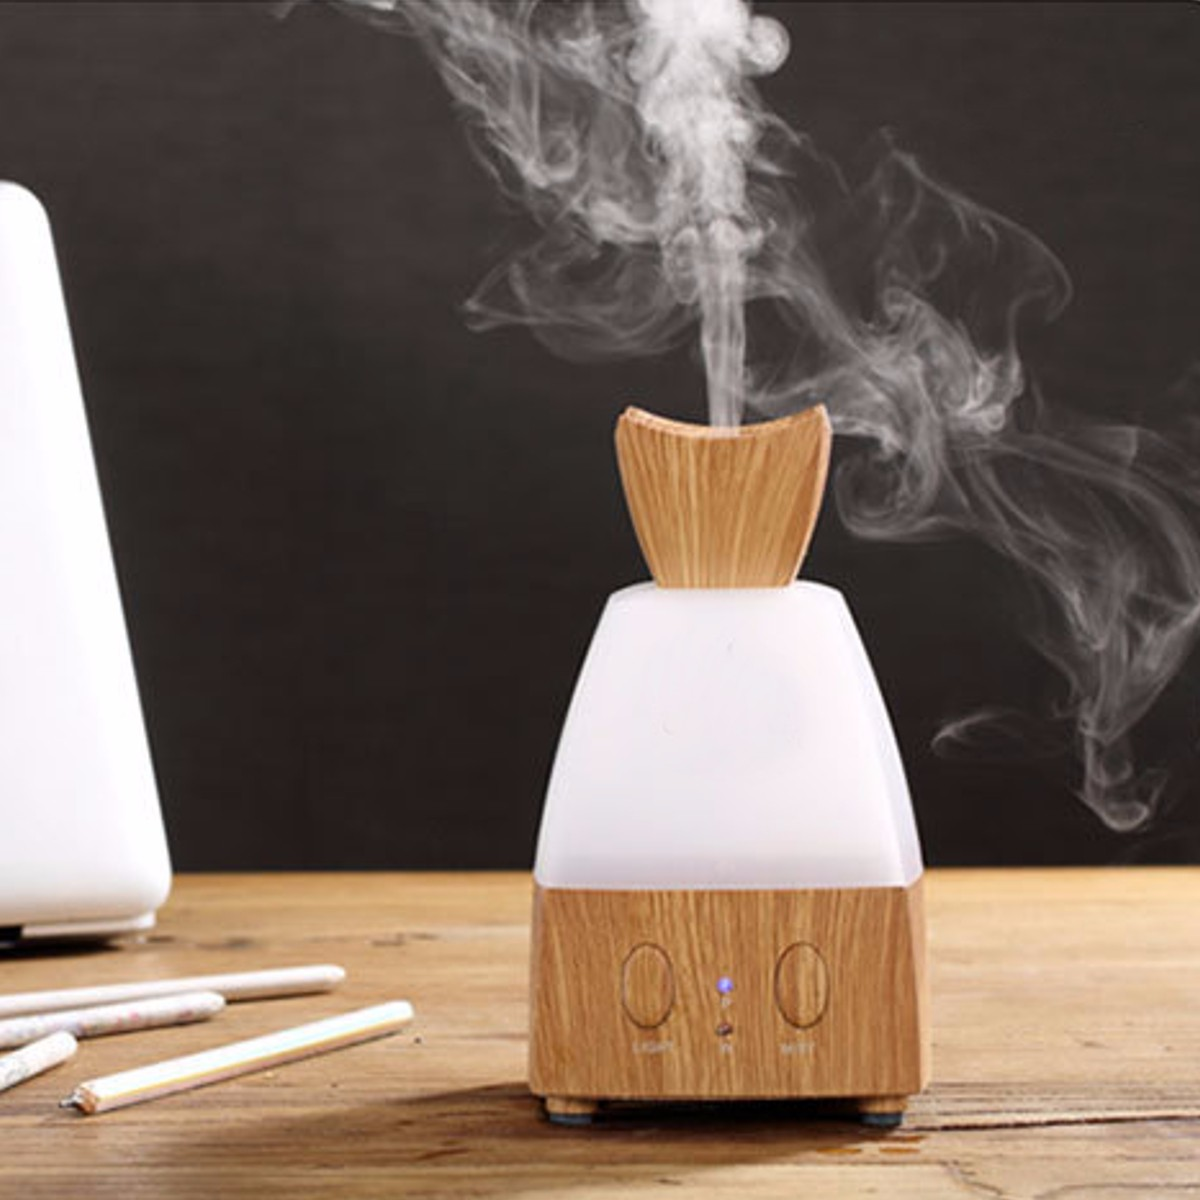 12W LED Wood Grain Air Humidifier Sprayer Purifier Ultrasonic Aromatherapy Essential Oil Diffuser Air Conditioning Appliance New